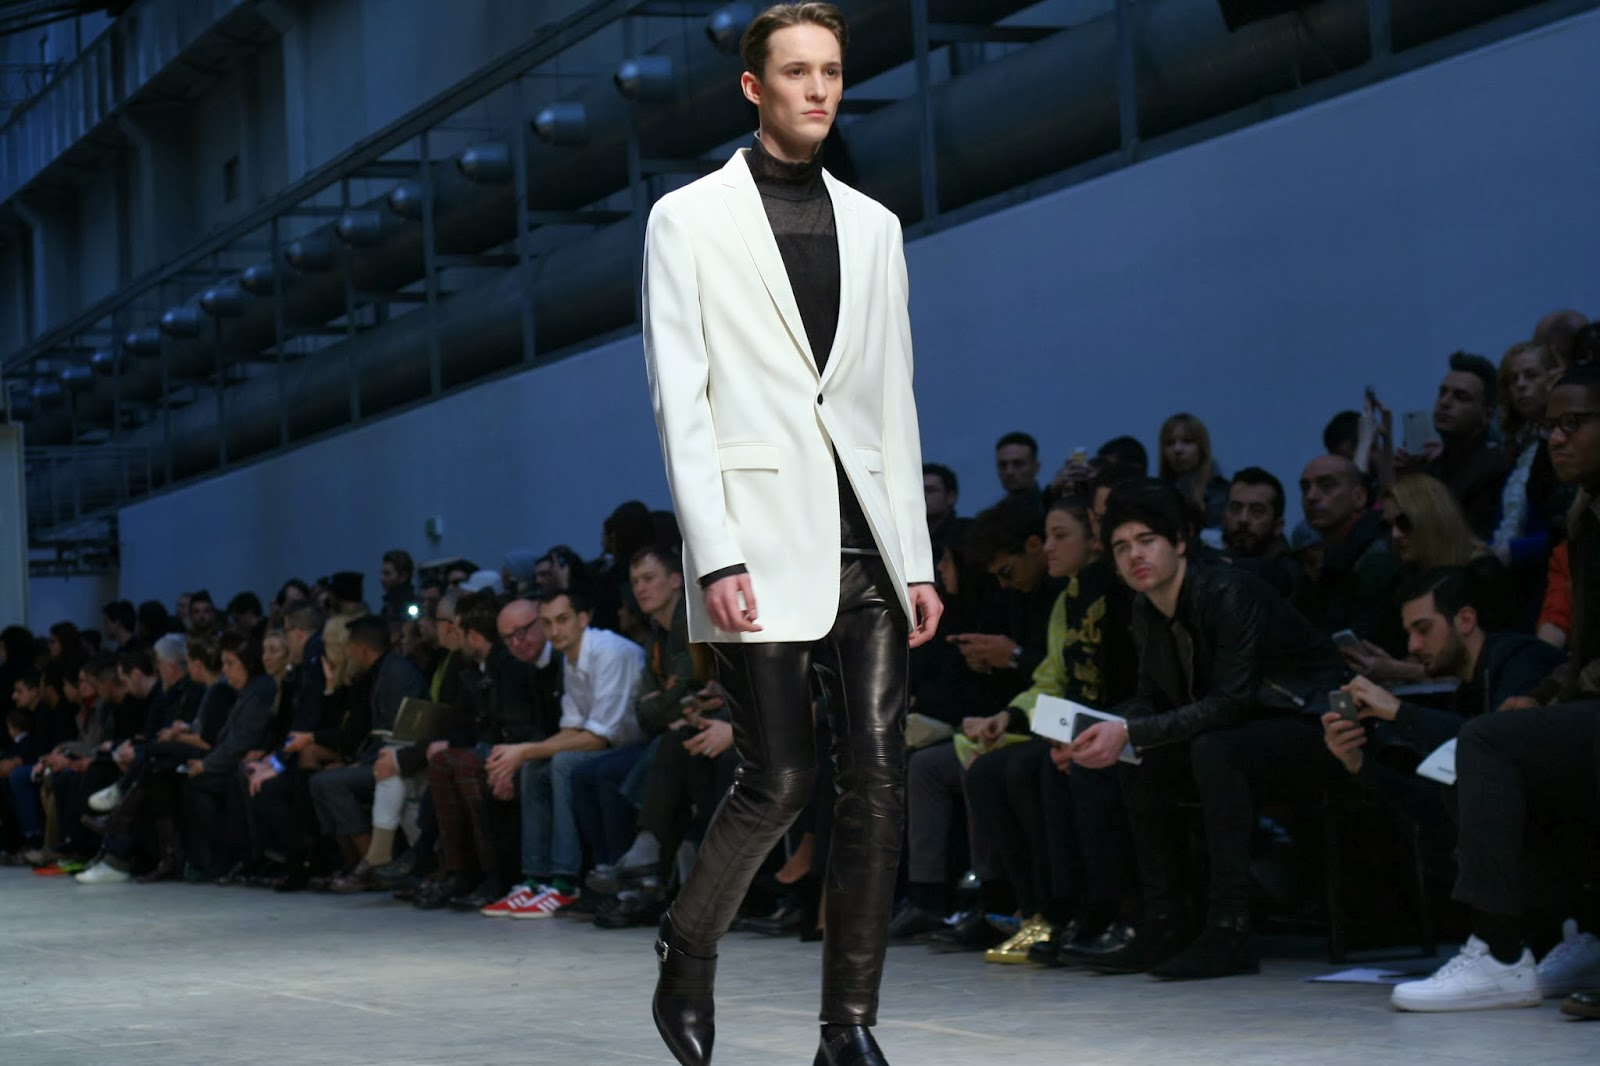 smira fashion, men blog, swiss mode, costume national, stephane mirao, Julian Zingerli, fashion week men, milan fashion week, paris fashion week, mode homme,